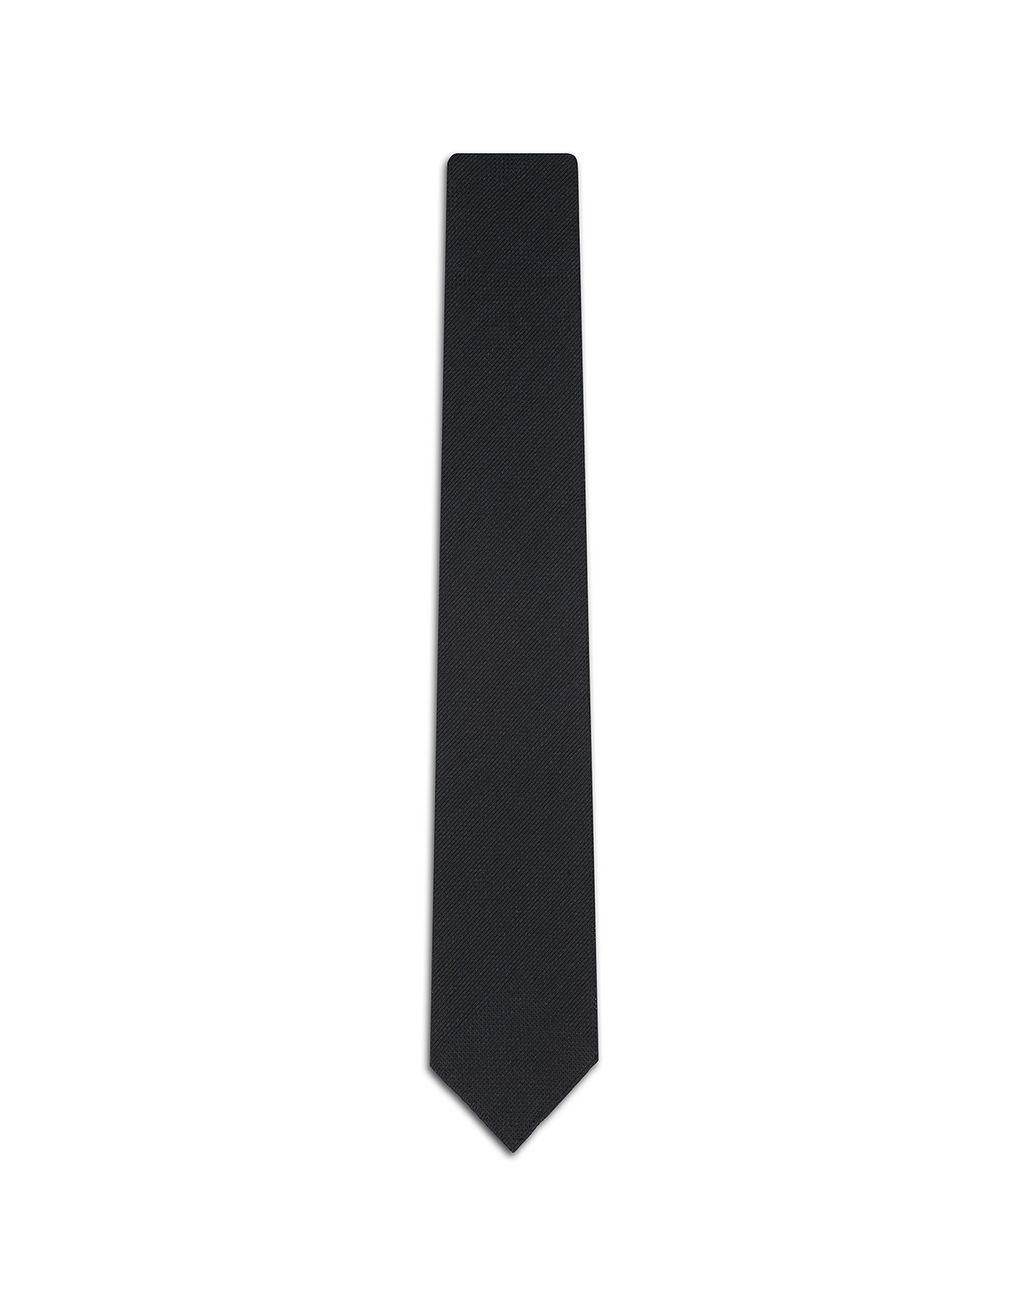 BRIONI Navy-Blue Unlined Tie Tie Man f